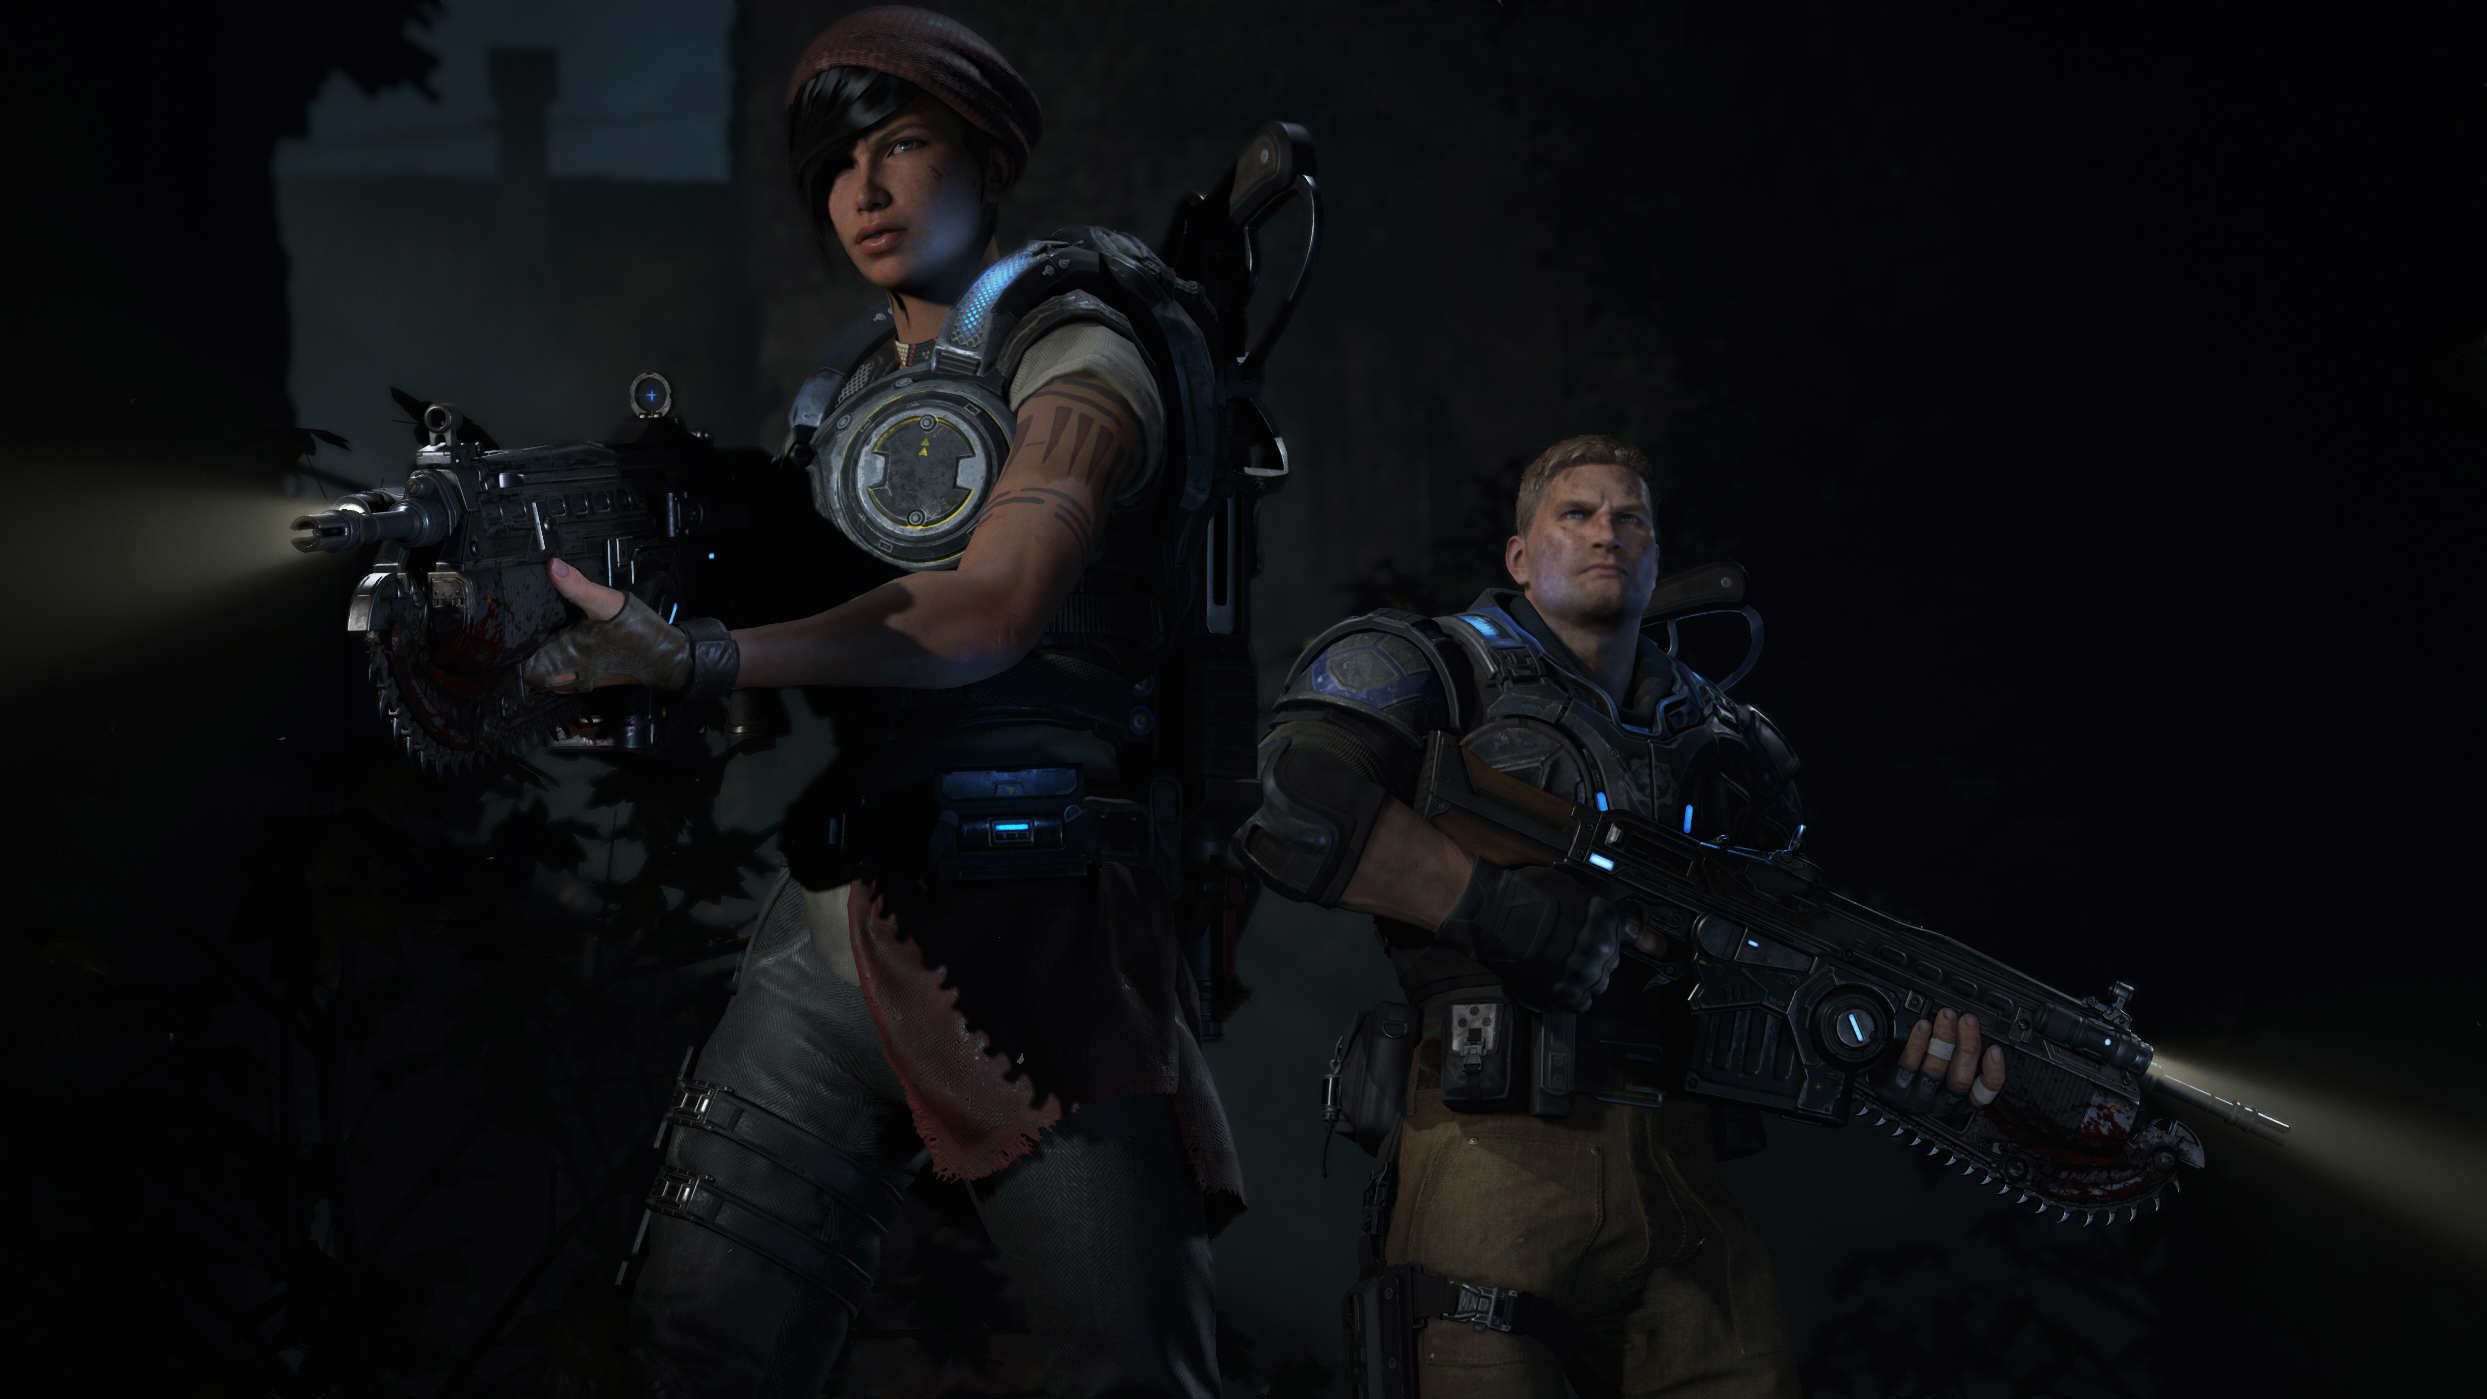 Gears Of War 4 Cast Revealed, With A Nice Surprise For Fans GearsOfWar4 1 jpg